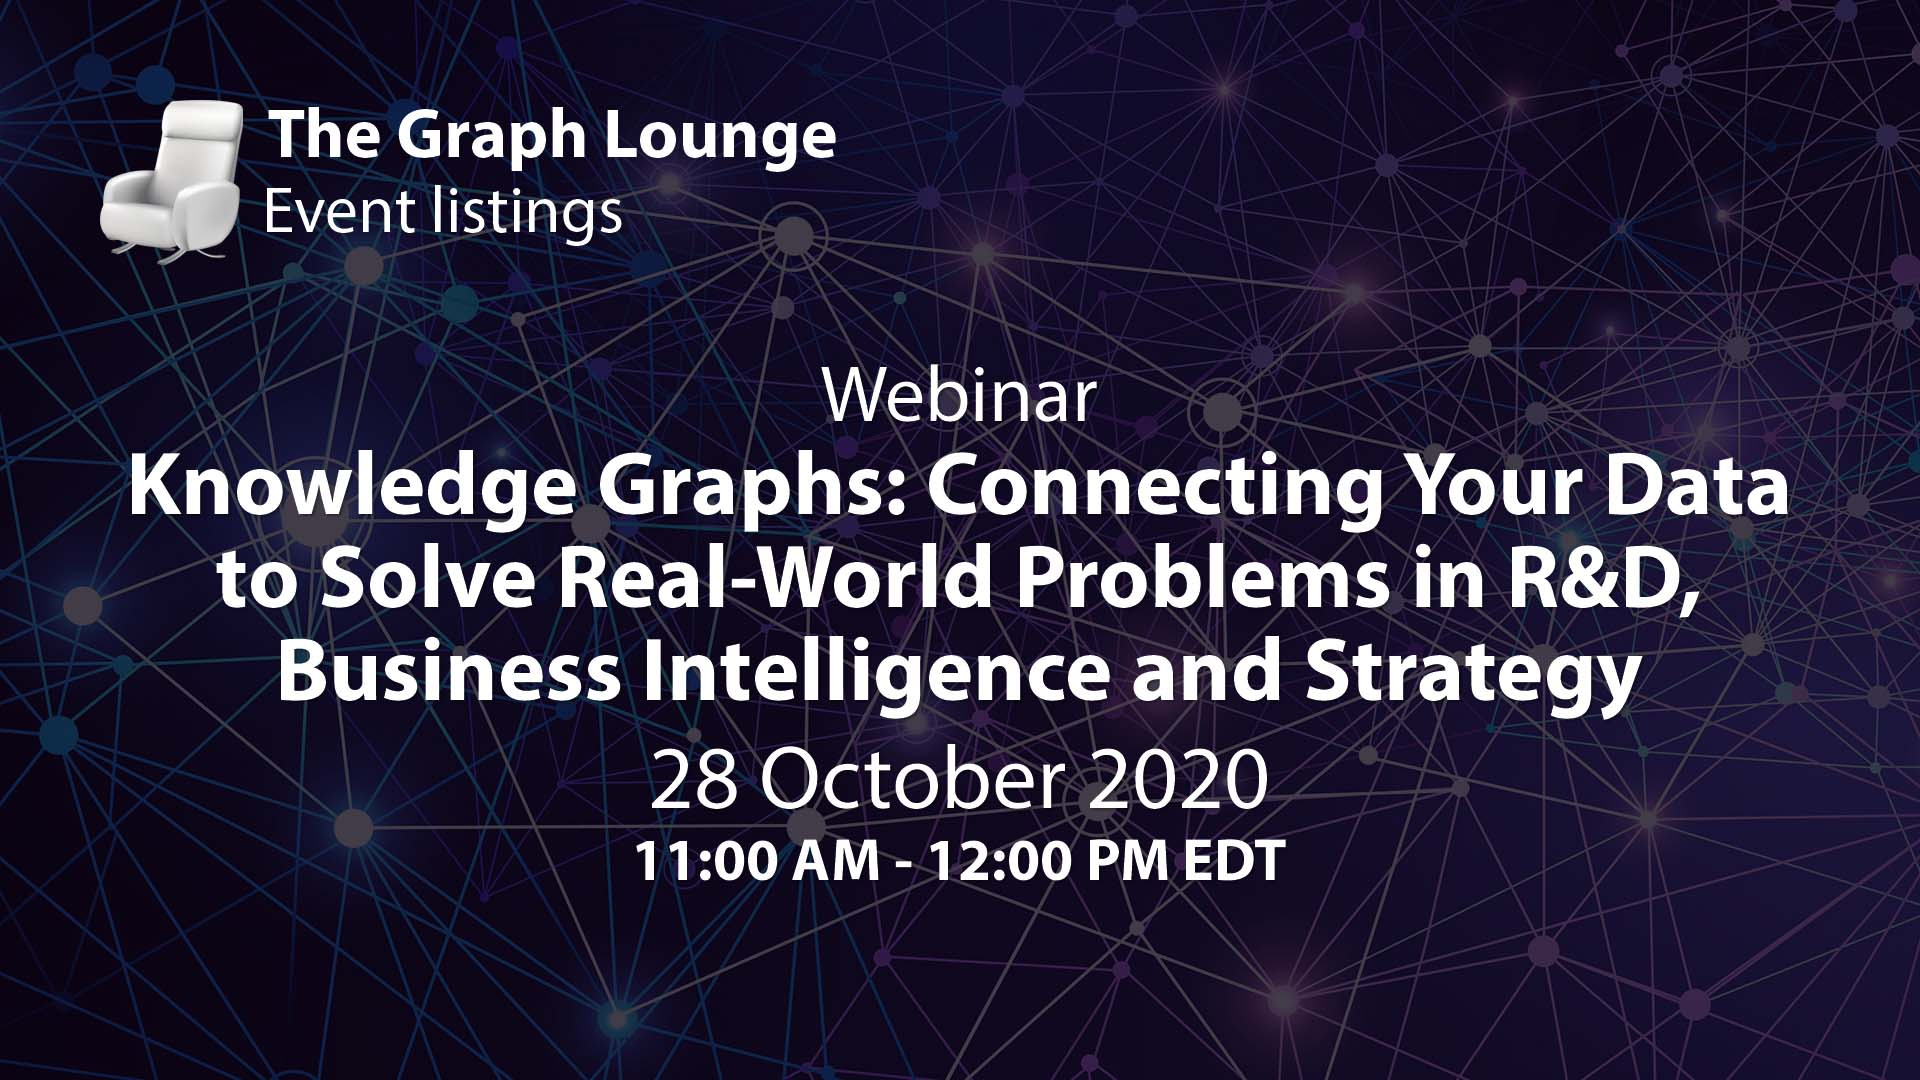 Knowledge Graphs: Connecting Your Data to Solve Real-World Problems in R&D, Business Intelligence and Strategy